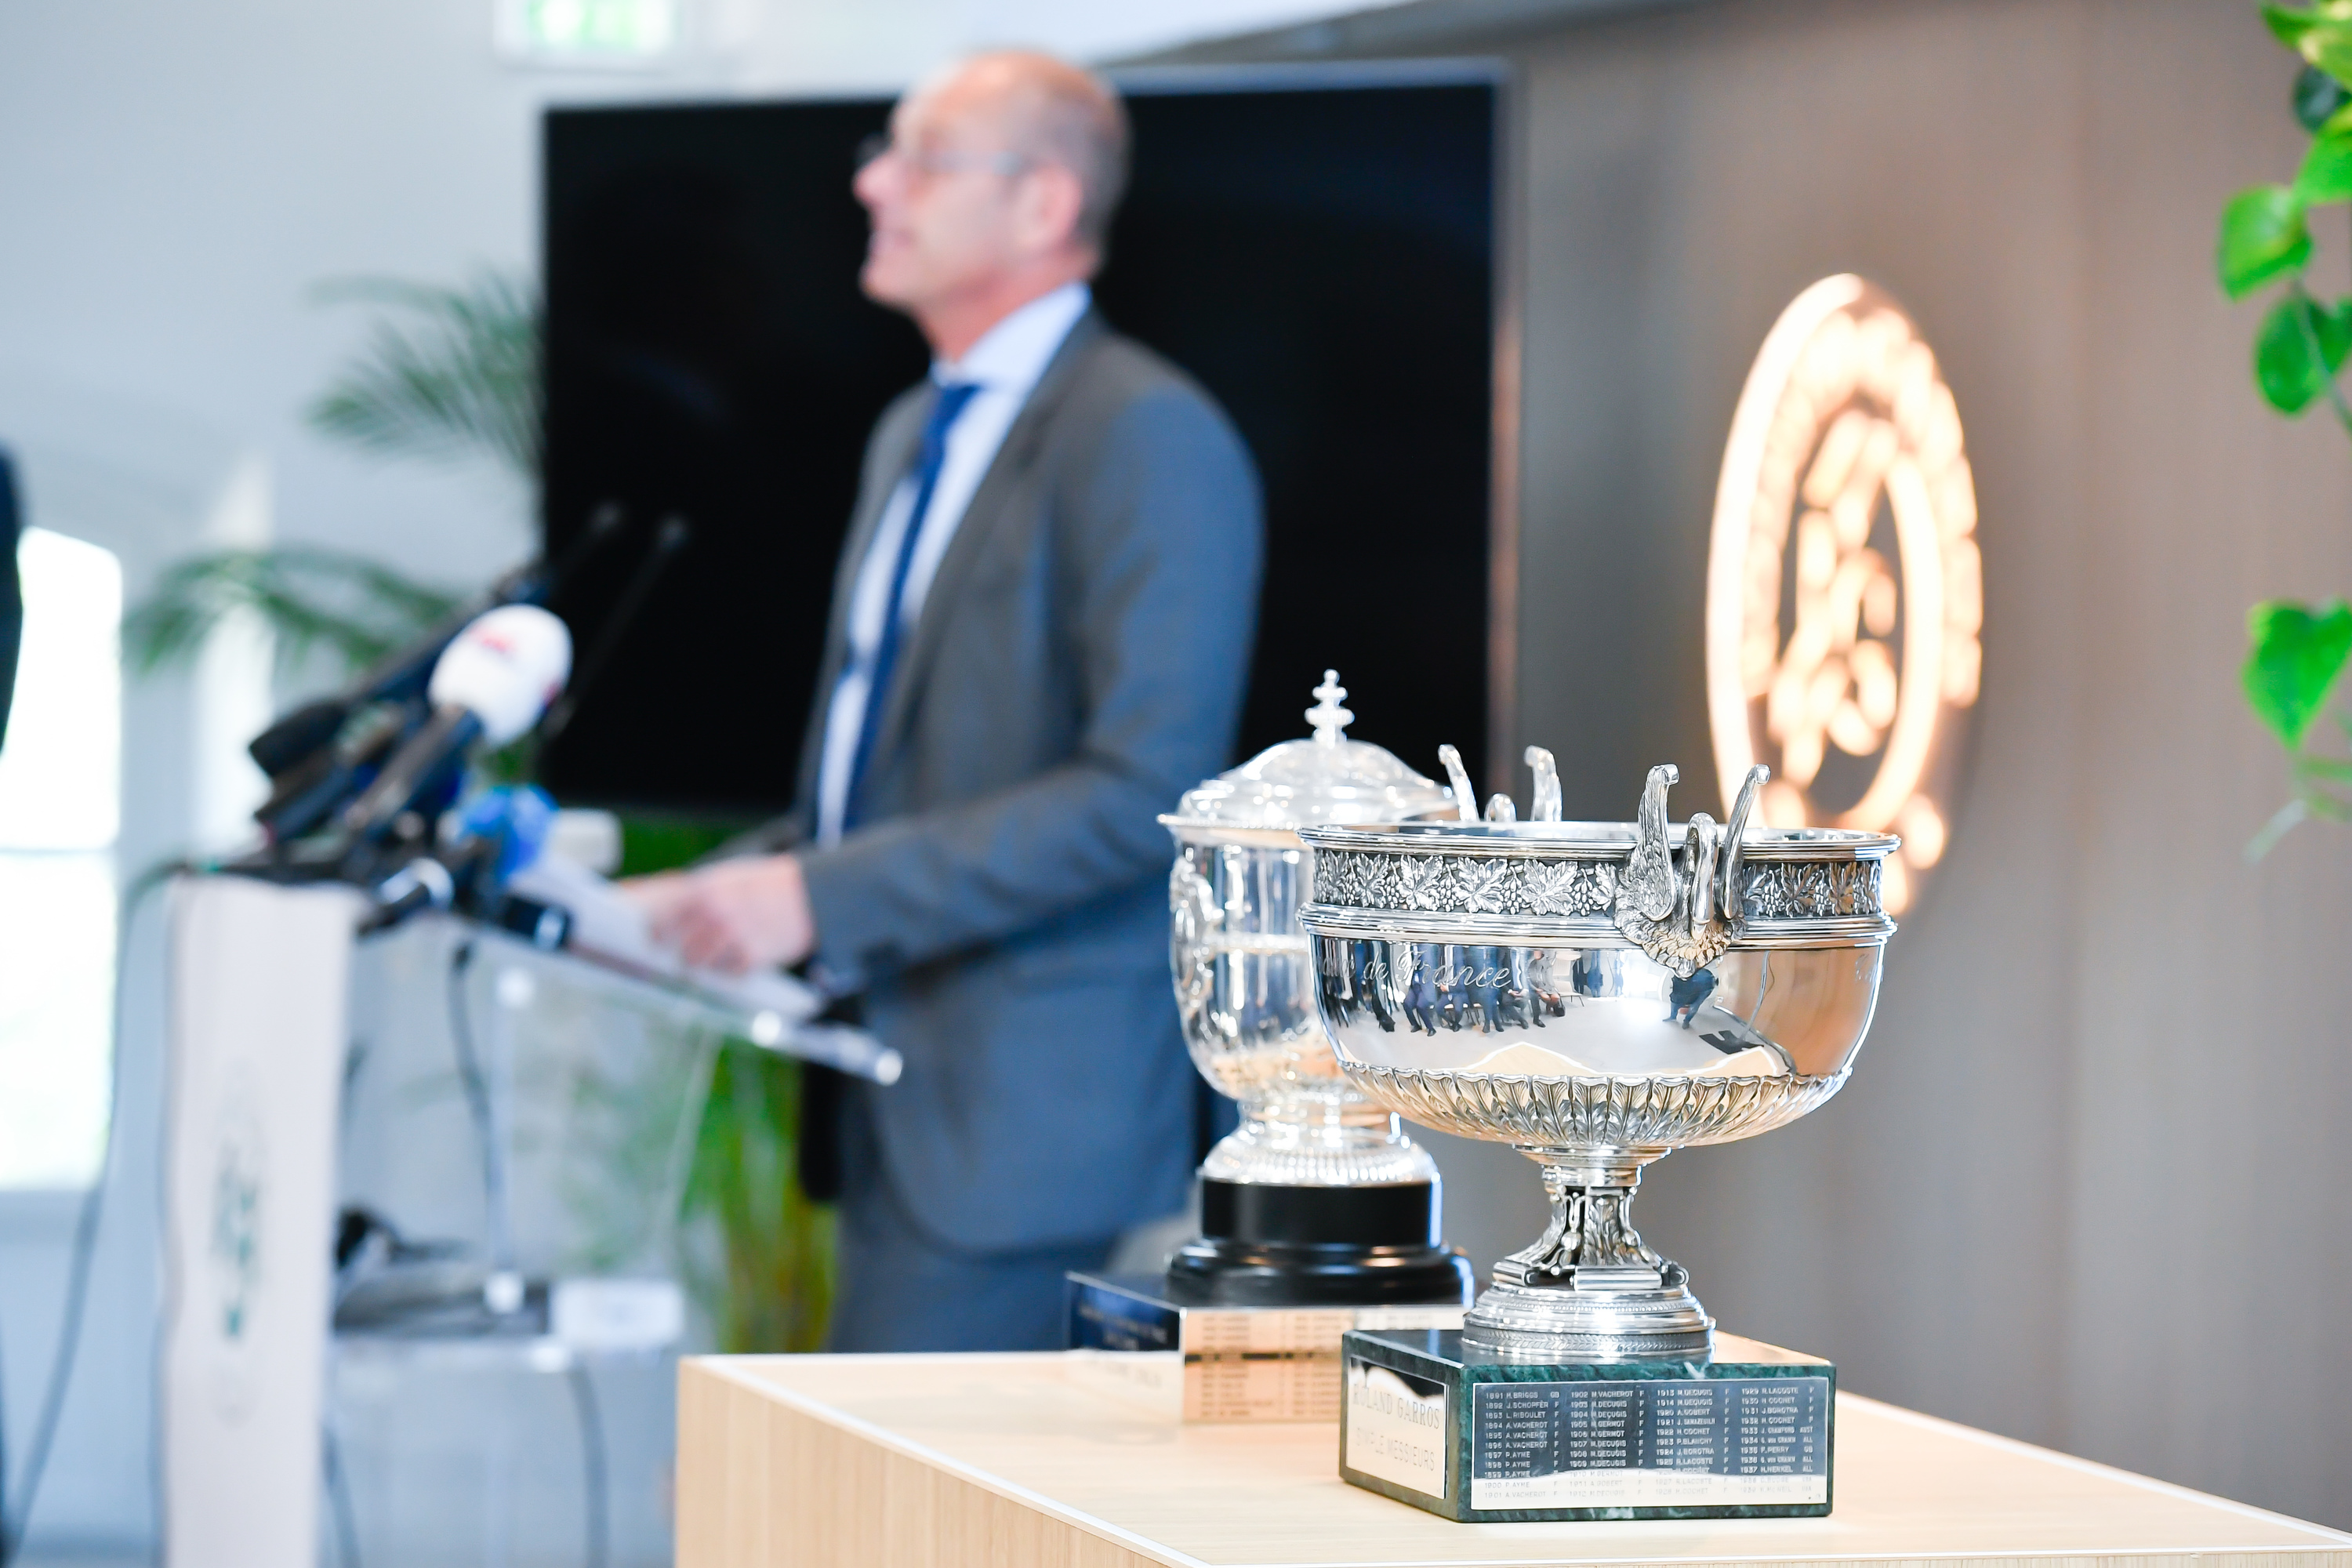 Roland-Garros 2019: the new prize money unveiled - Roland